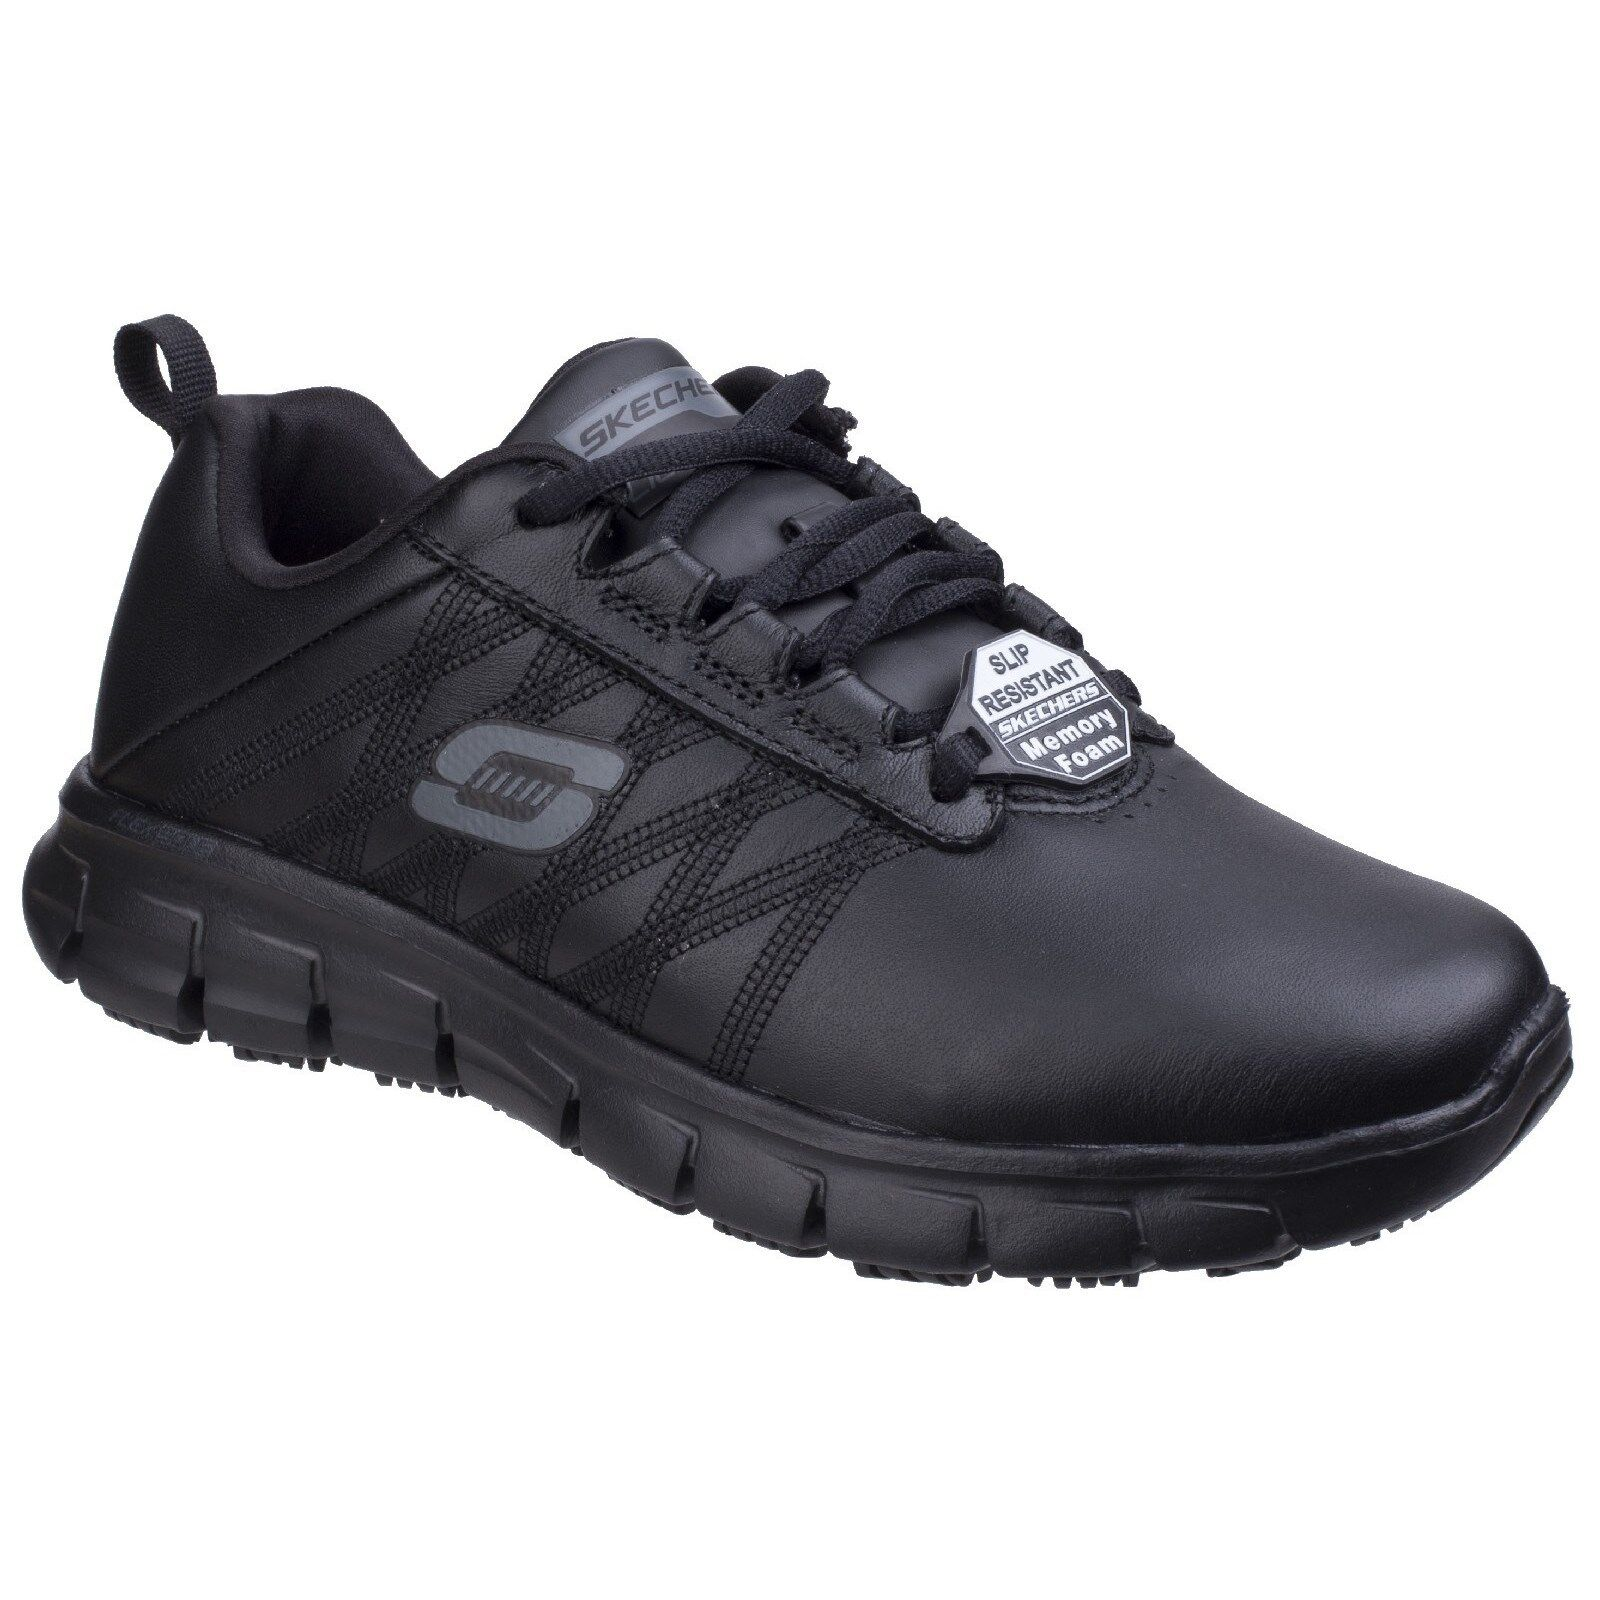 Skechers Sure Track Erath SR Work Trainers Memory Foam Leather Womens Shoes